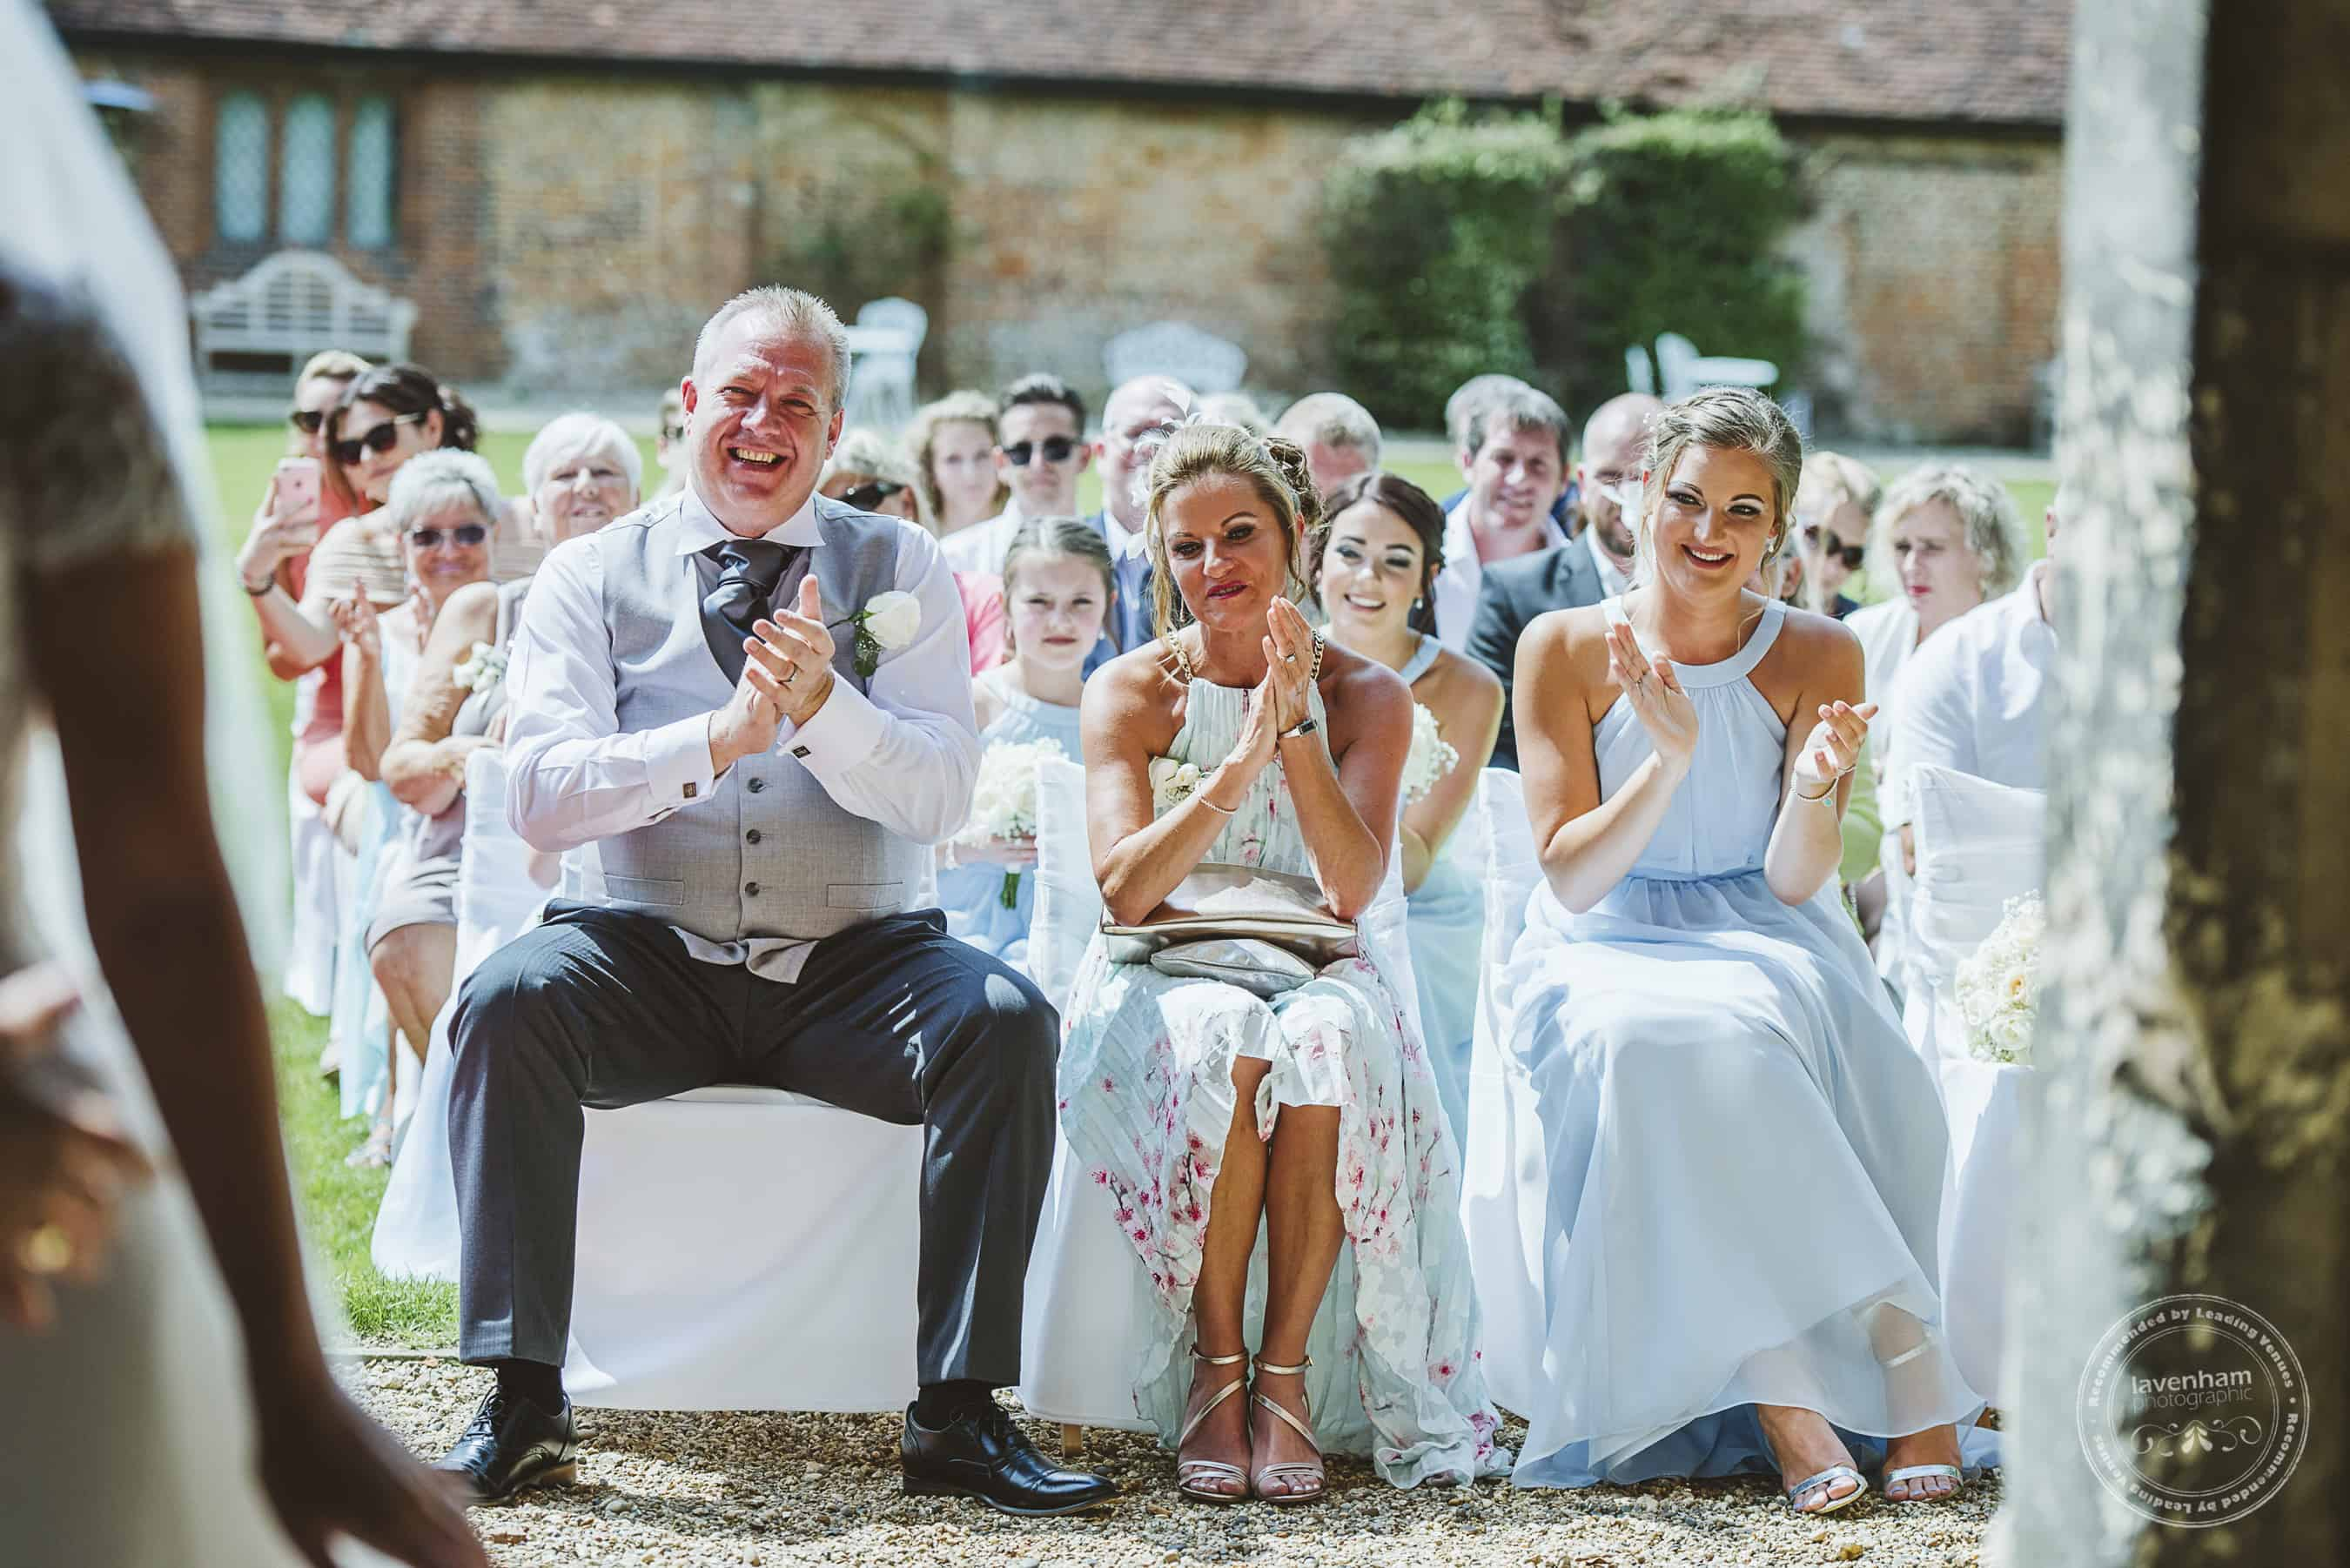 030618 Leez Priory Wedding Photography Lavenham Photographic 041